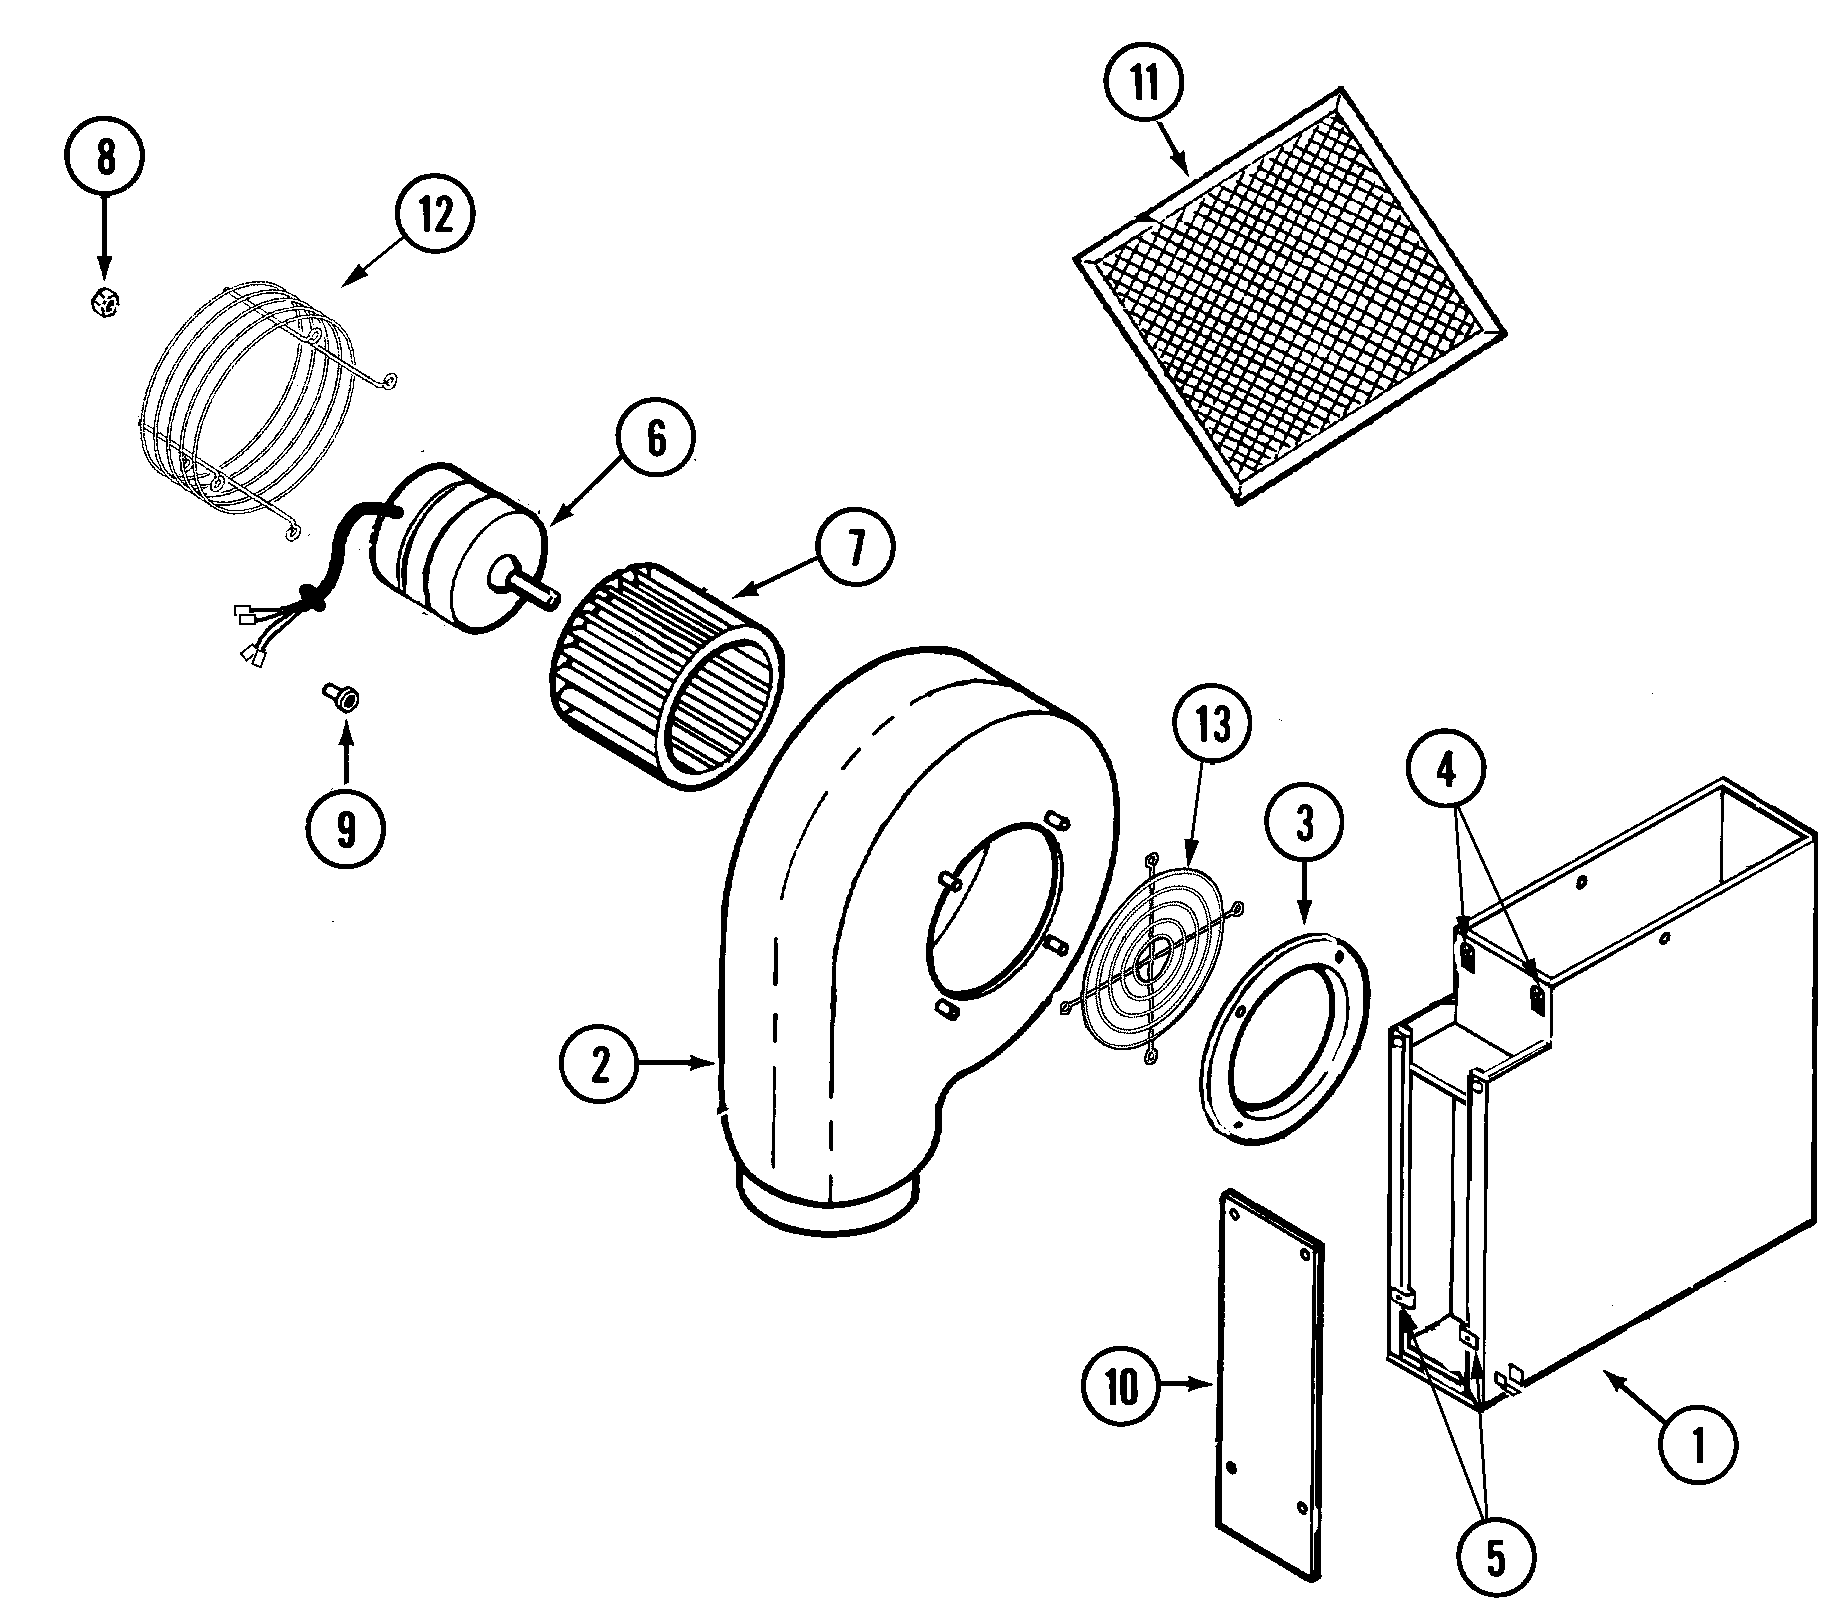 BLOWER PLENUM Diagram & Parts List for Model jed8130adb